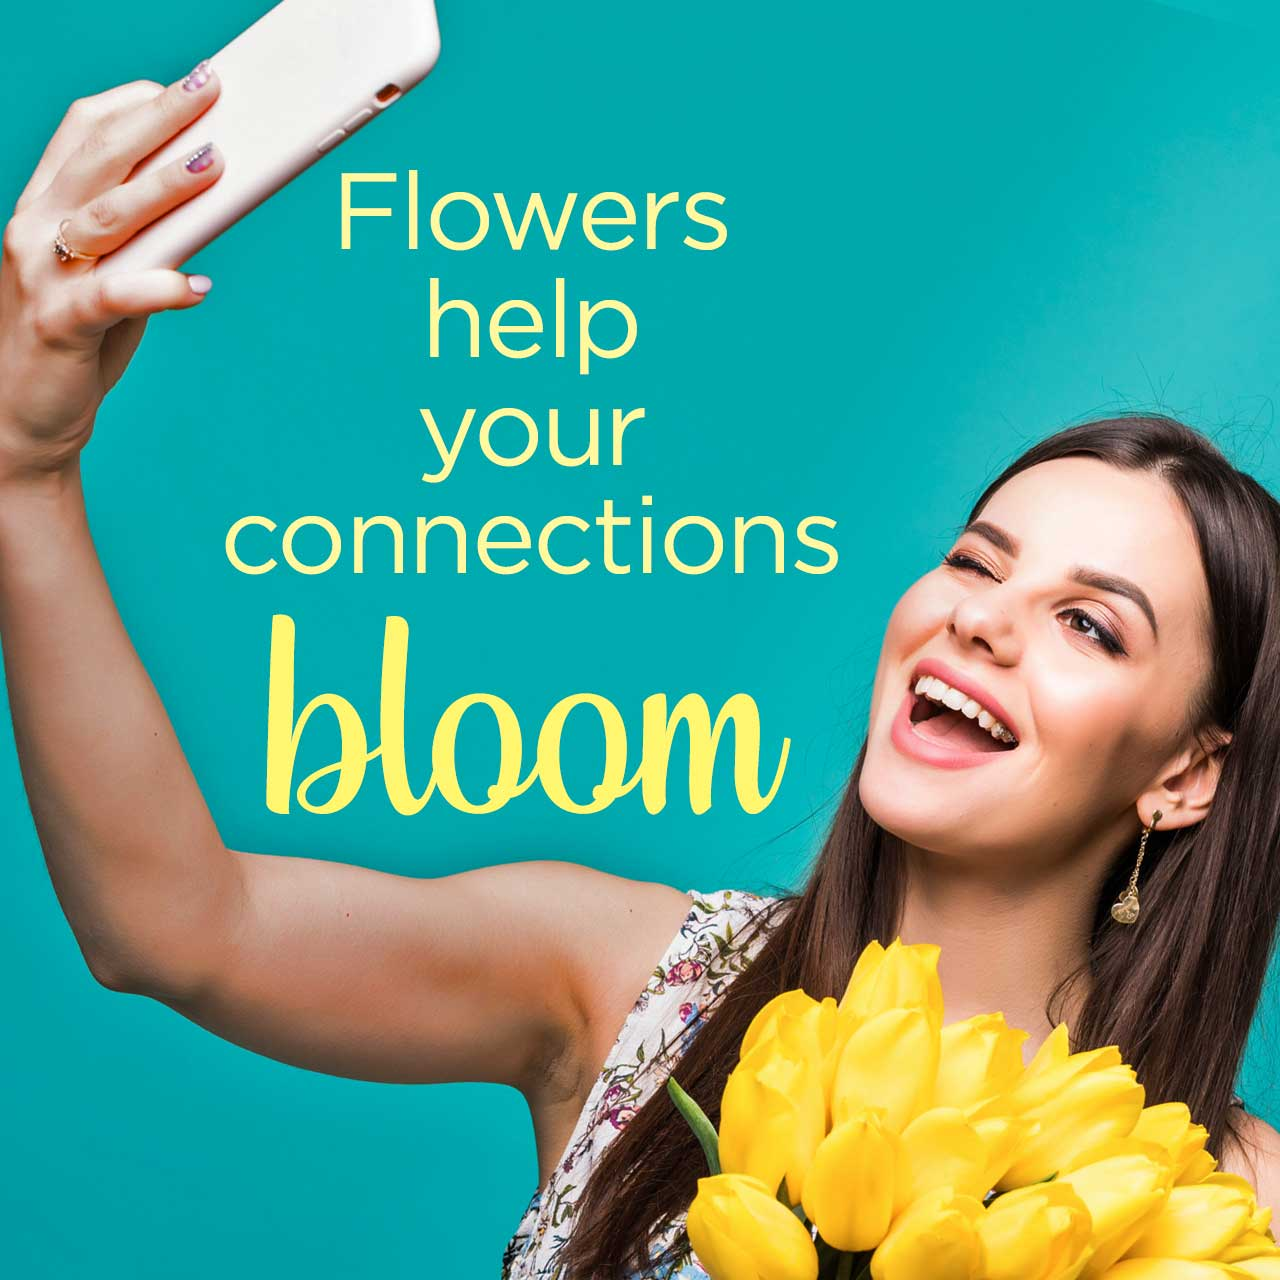 Flowers help your connections bloom